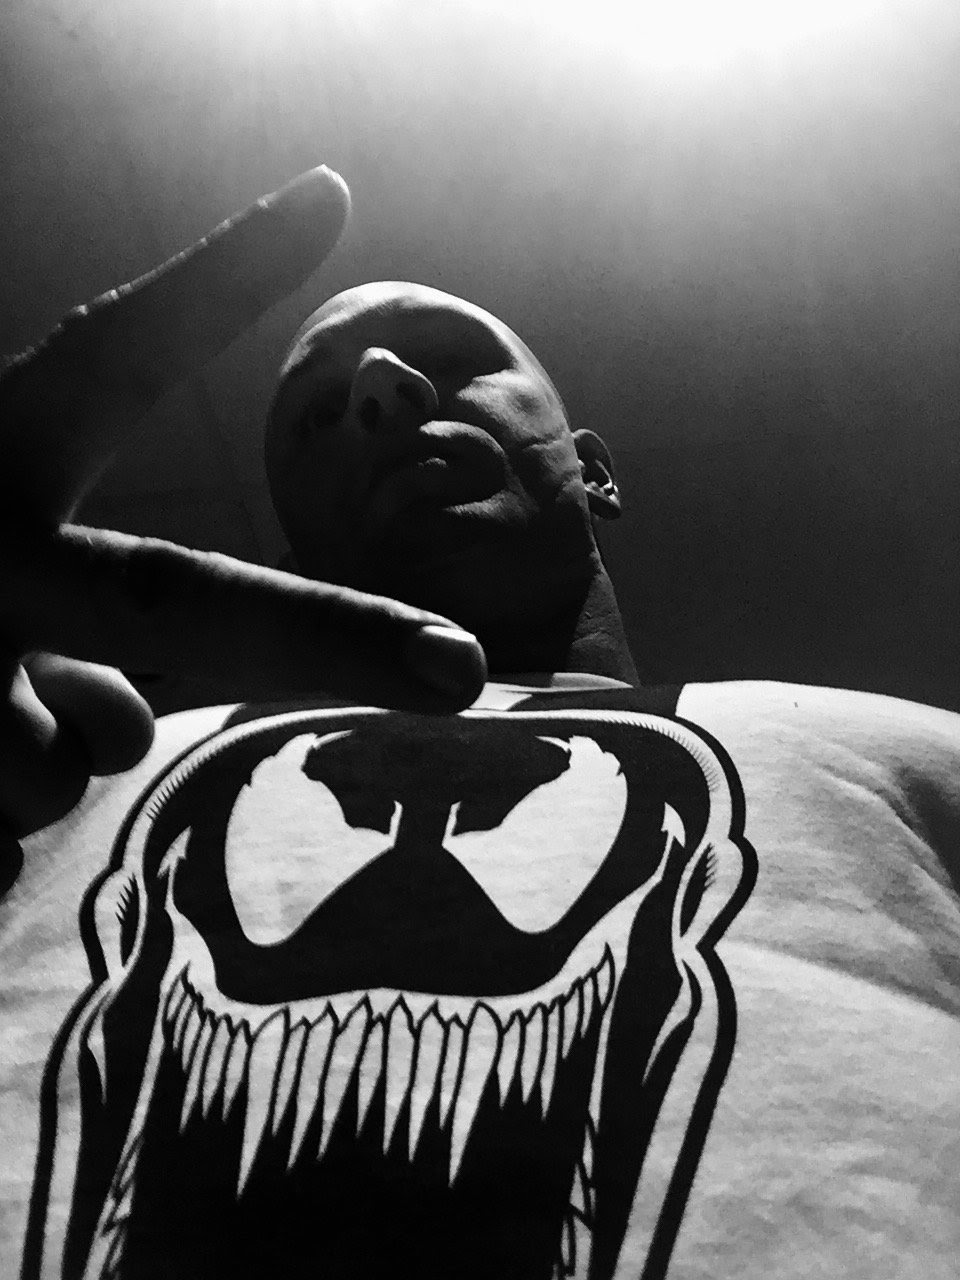 VENOM Seeps Into Production As Cameras Roll This Week